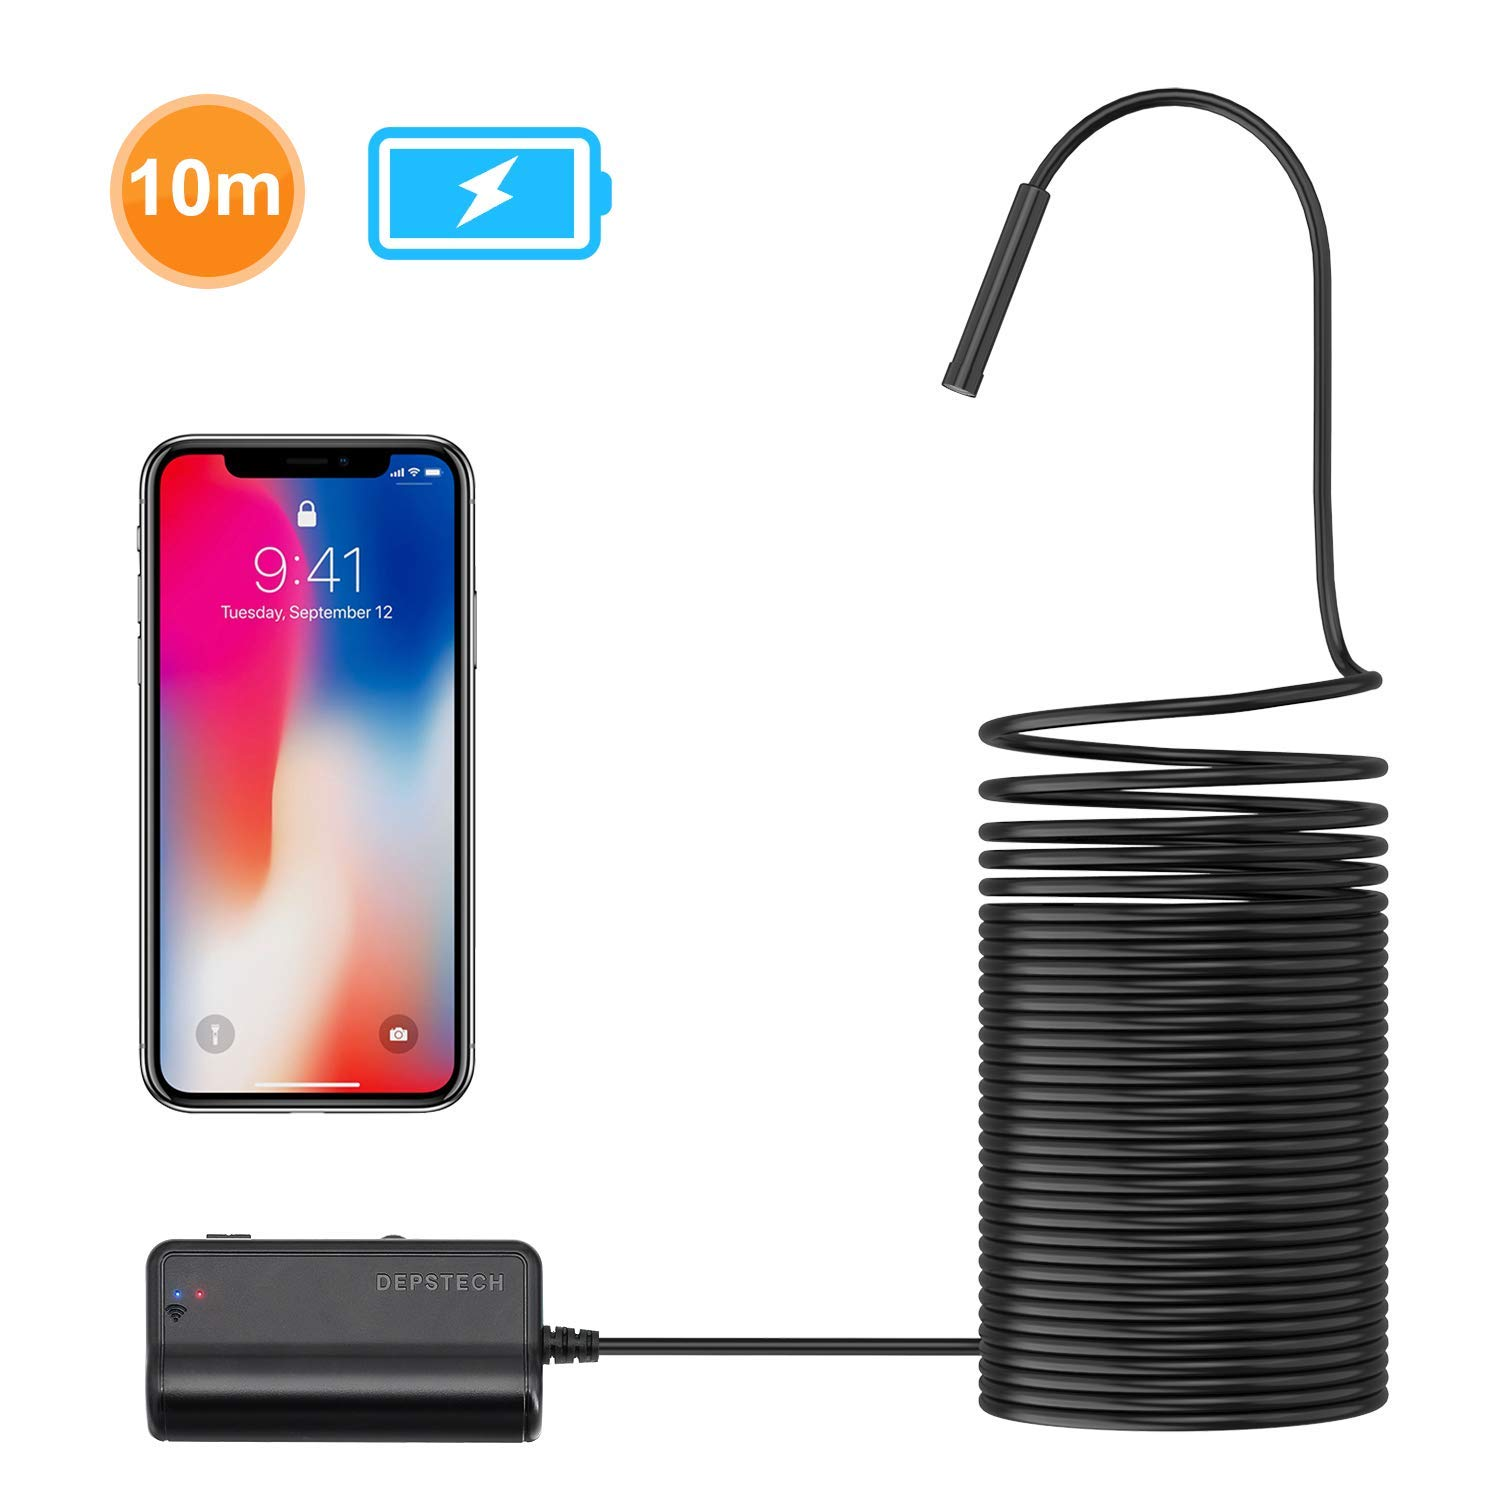 DEPSTECH 1200P Semi-rigid Wireless Endoscope, 2 0 MP HD WiFi Borescope  Inspection Camera,16 inch Focal Distance & 2200mAh Battery Snake Camera for